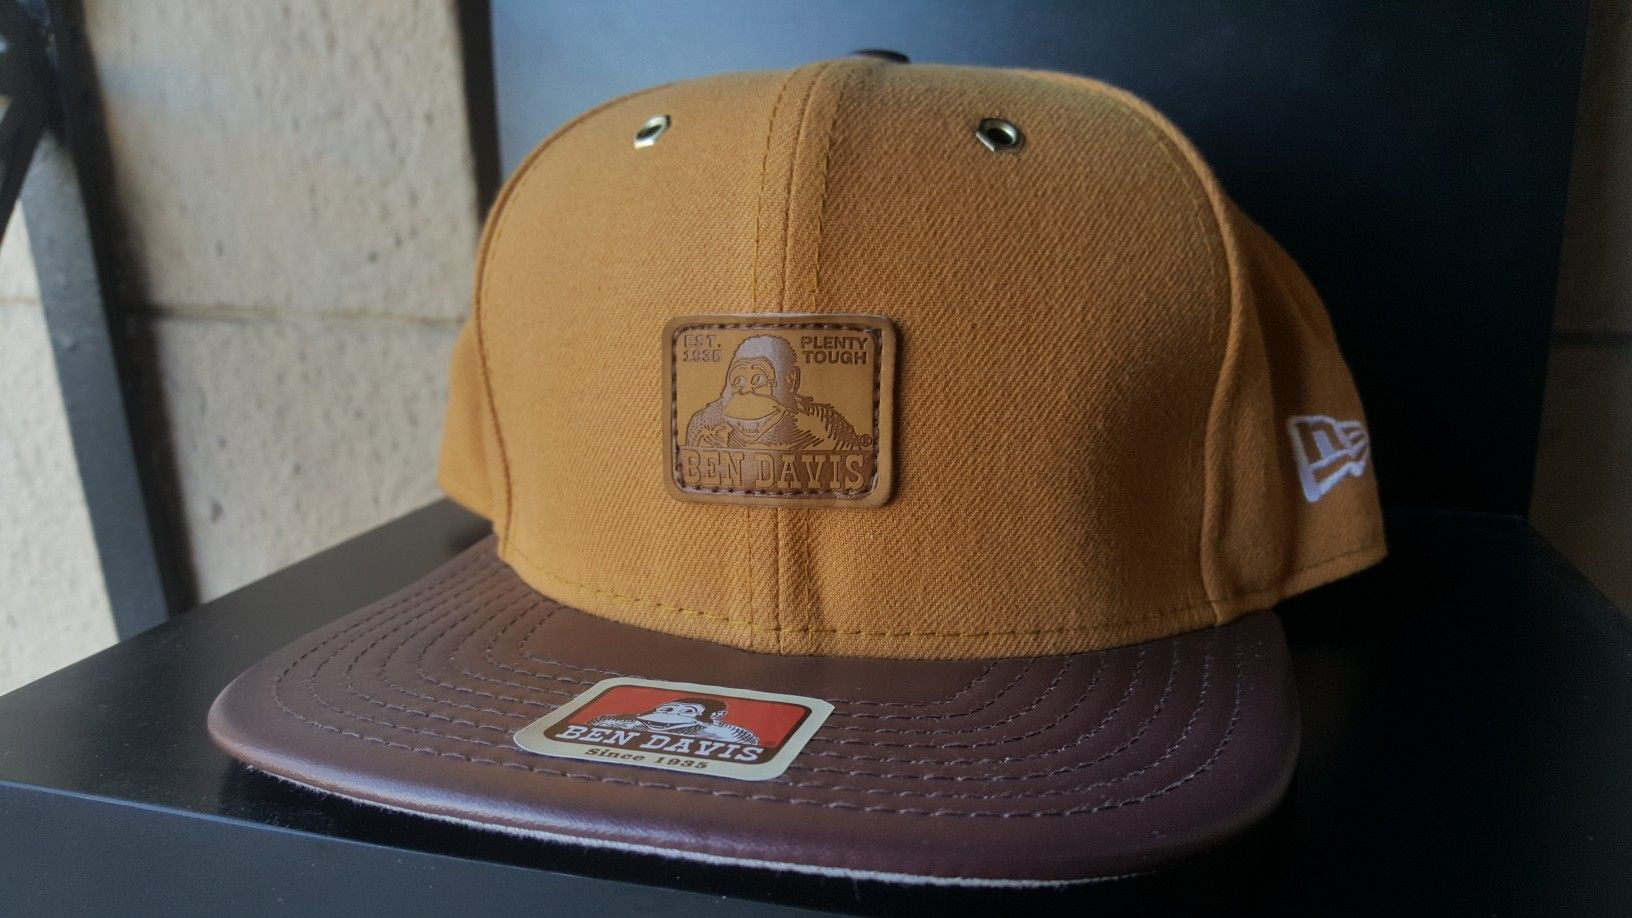 Custom Ben Davis New Era Wheat   Brown Leather Snapback hat  5add6899ffc0